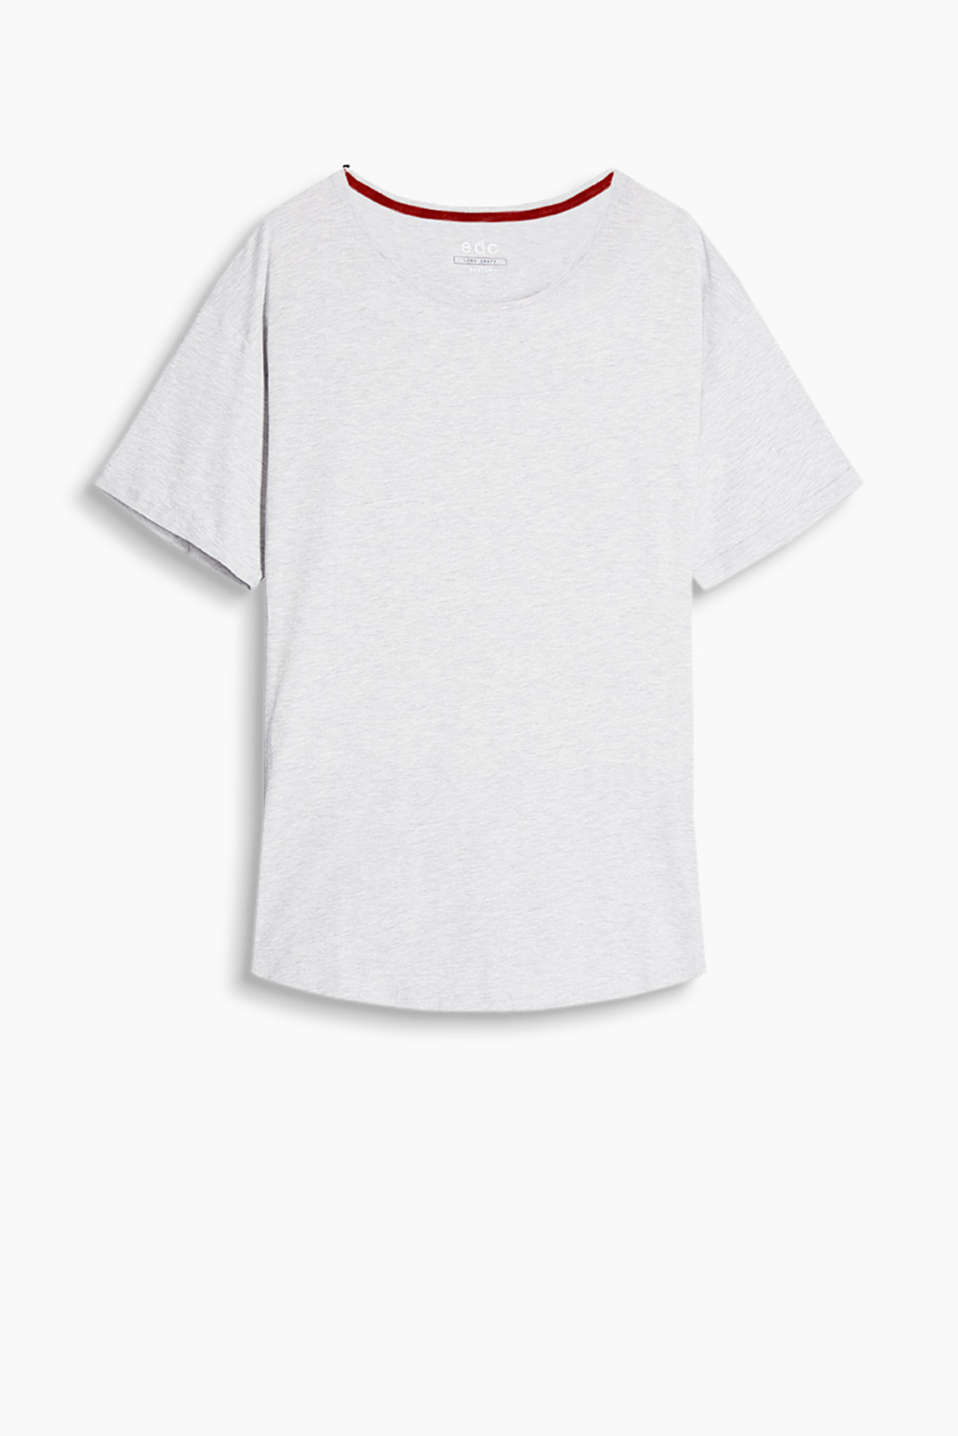 Soft, cotton jersey T-shirt in a long, loose cut featuring a rounded hem